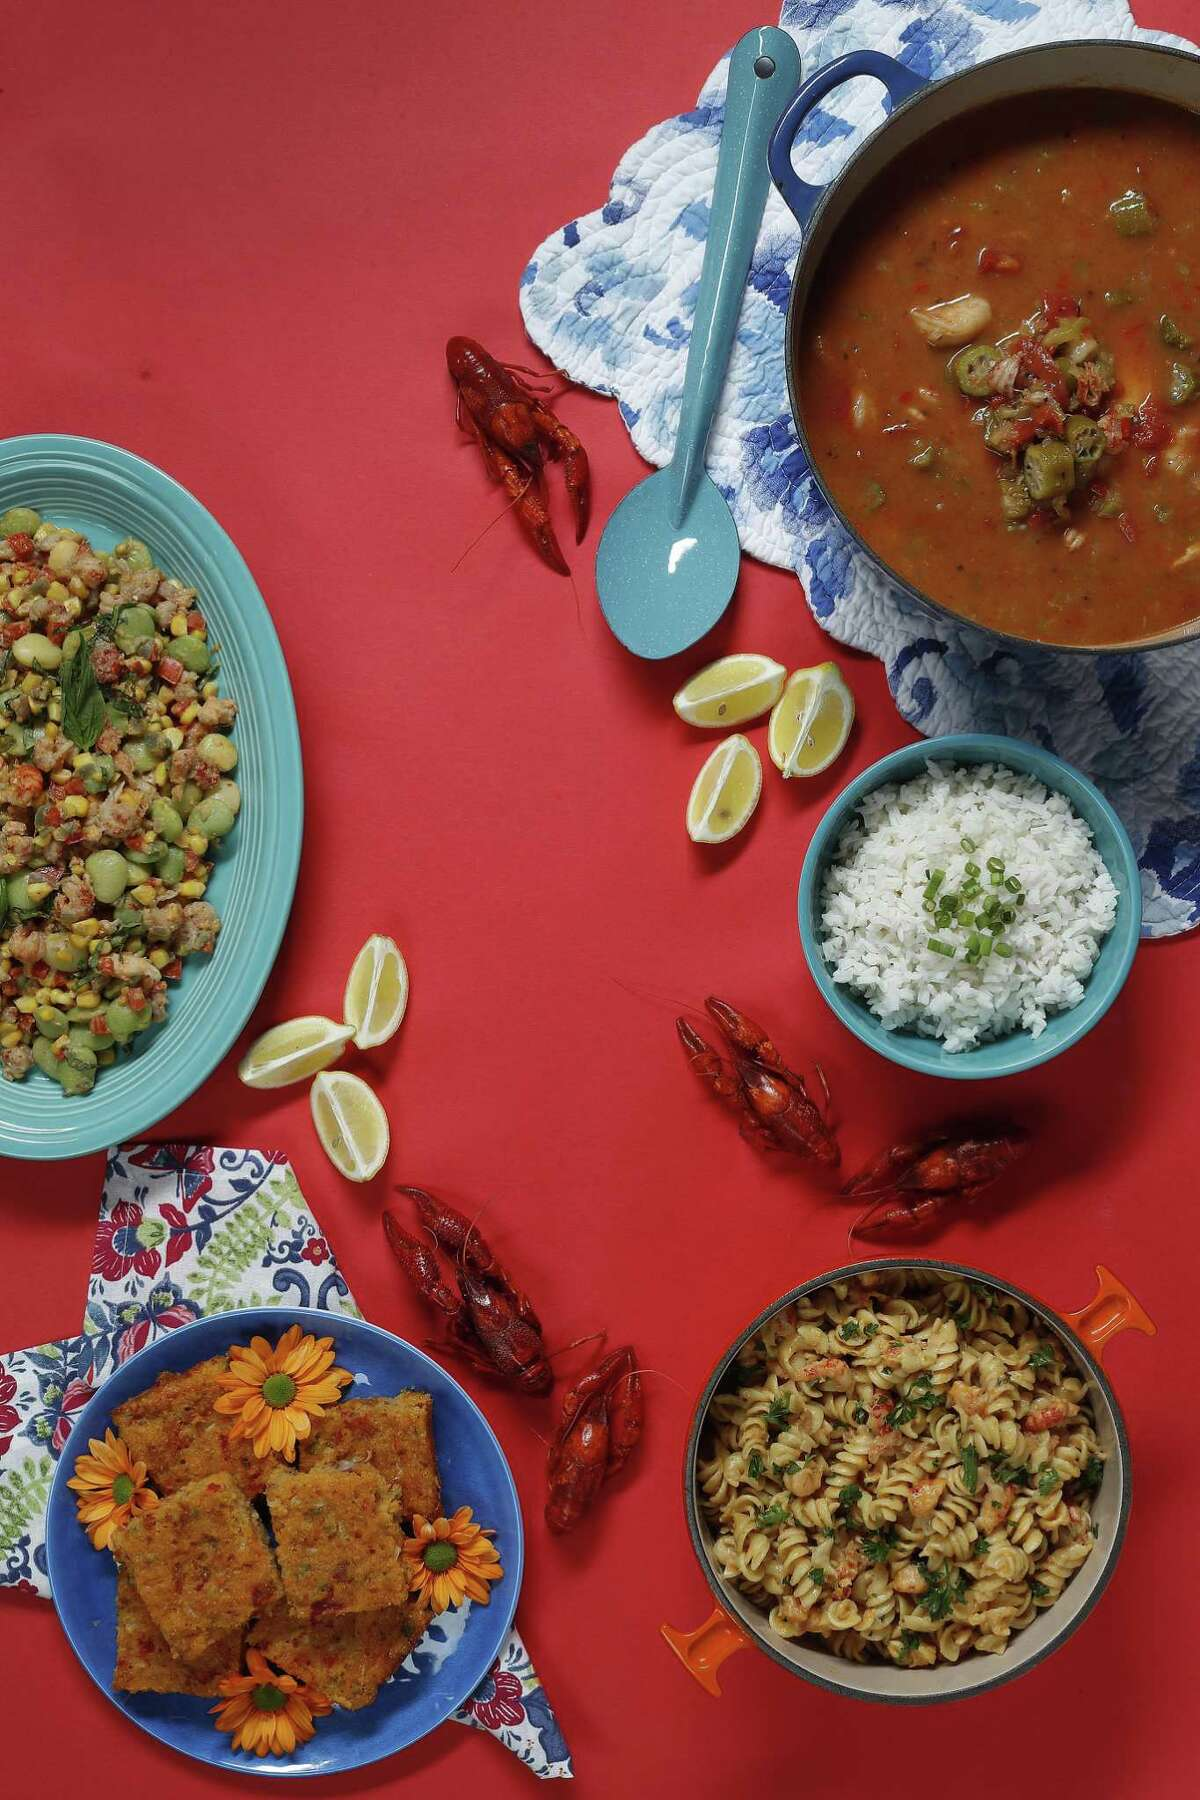 It's easy to use thawed, frozen crawfish tail meat in a variety of Cajun- and Creole-flavored recipes. We used frozen crawfish tails to make (from upper right corner) crawfish and shrimp gumbo, crawfish and cream over pasta, crawfish cornbread and crawfish succotash.